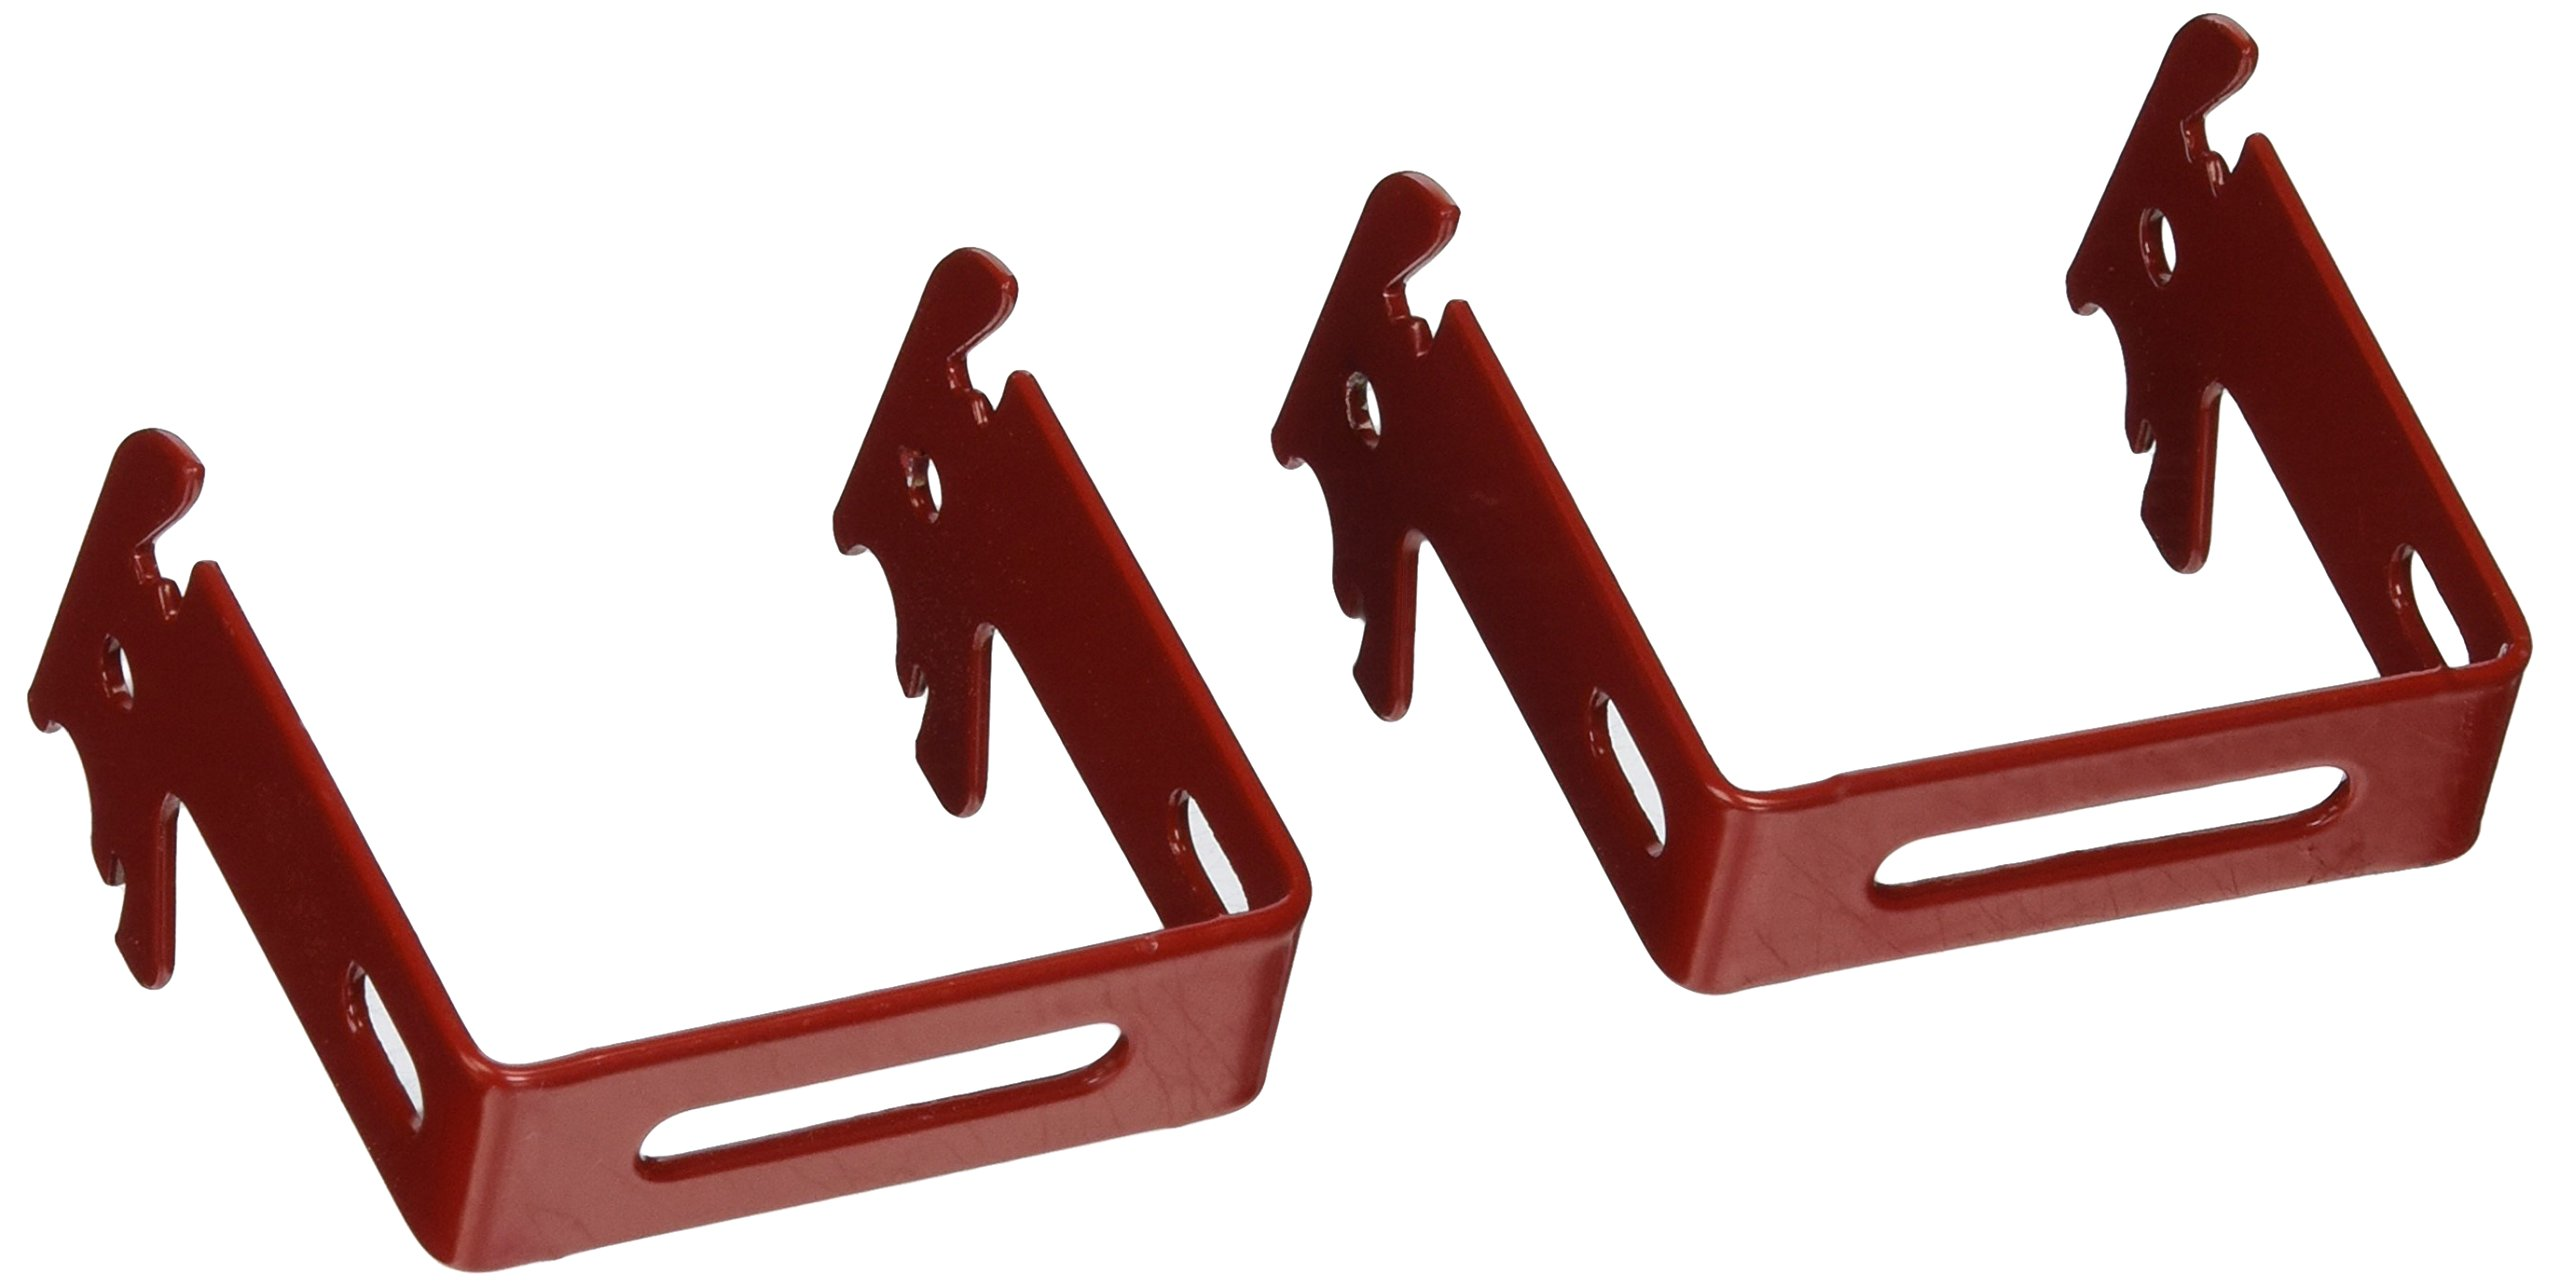 "Wall Control 10-CB-022 R C-Bracket Slotted Metal Pegboard Hook for Wall Control Pegboard Only, 2"" x 2"", Red"